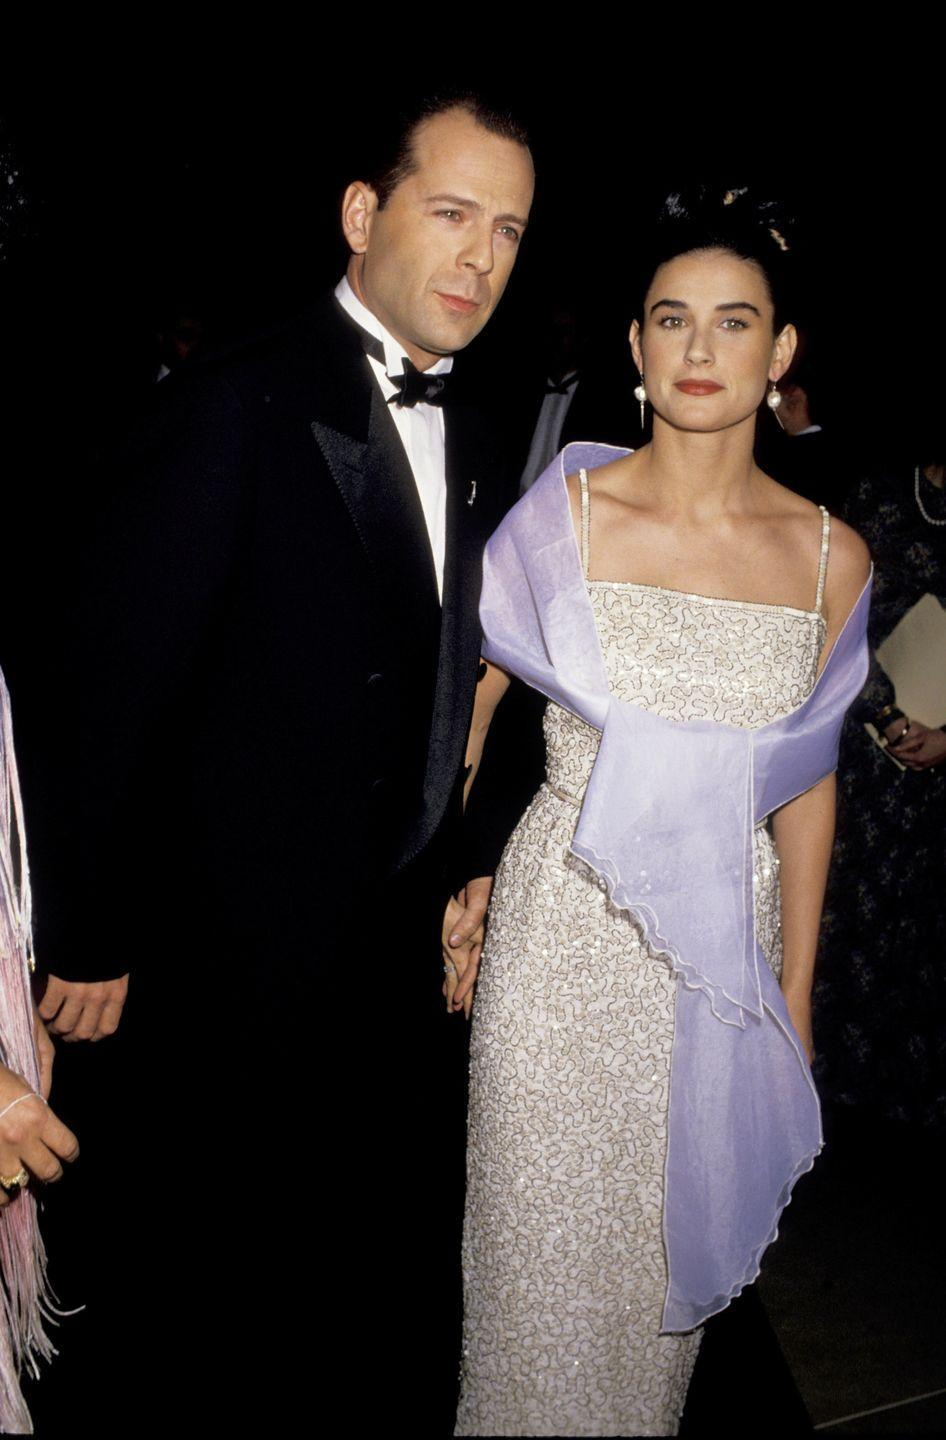 <p>There was a shift in the early '90s from over-the-top fashion to sleek, minimalist, and polished looks. Demi Moore was on trend with her spaghetti-strap, beaded gown and lilac shawl. </p>